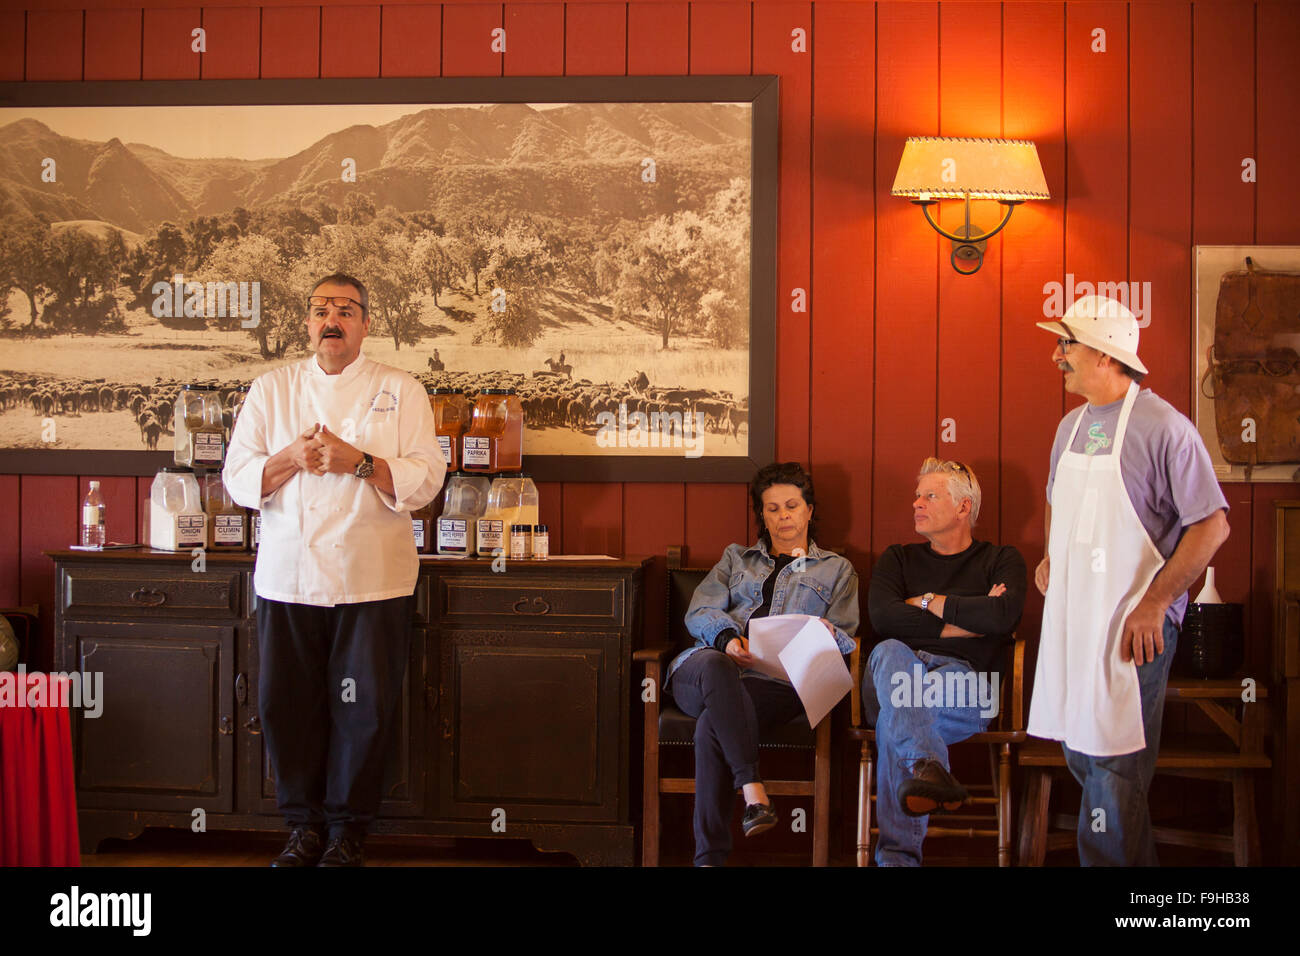 Chef Pascal Gode lectures at the Spice Seminar, BBQ Bootcamp, Alisal Guest Ranch, Solvang, California - Stock Image